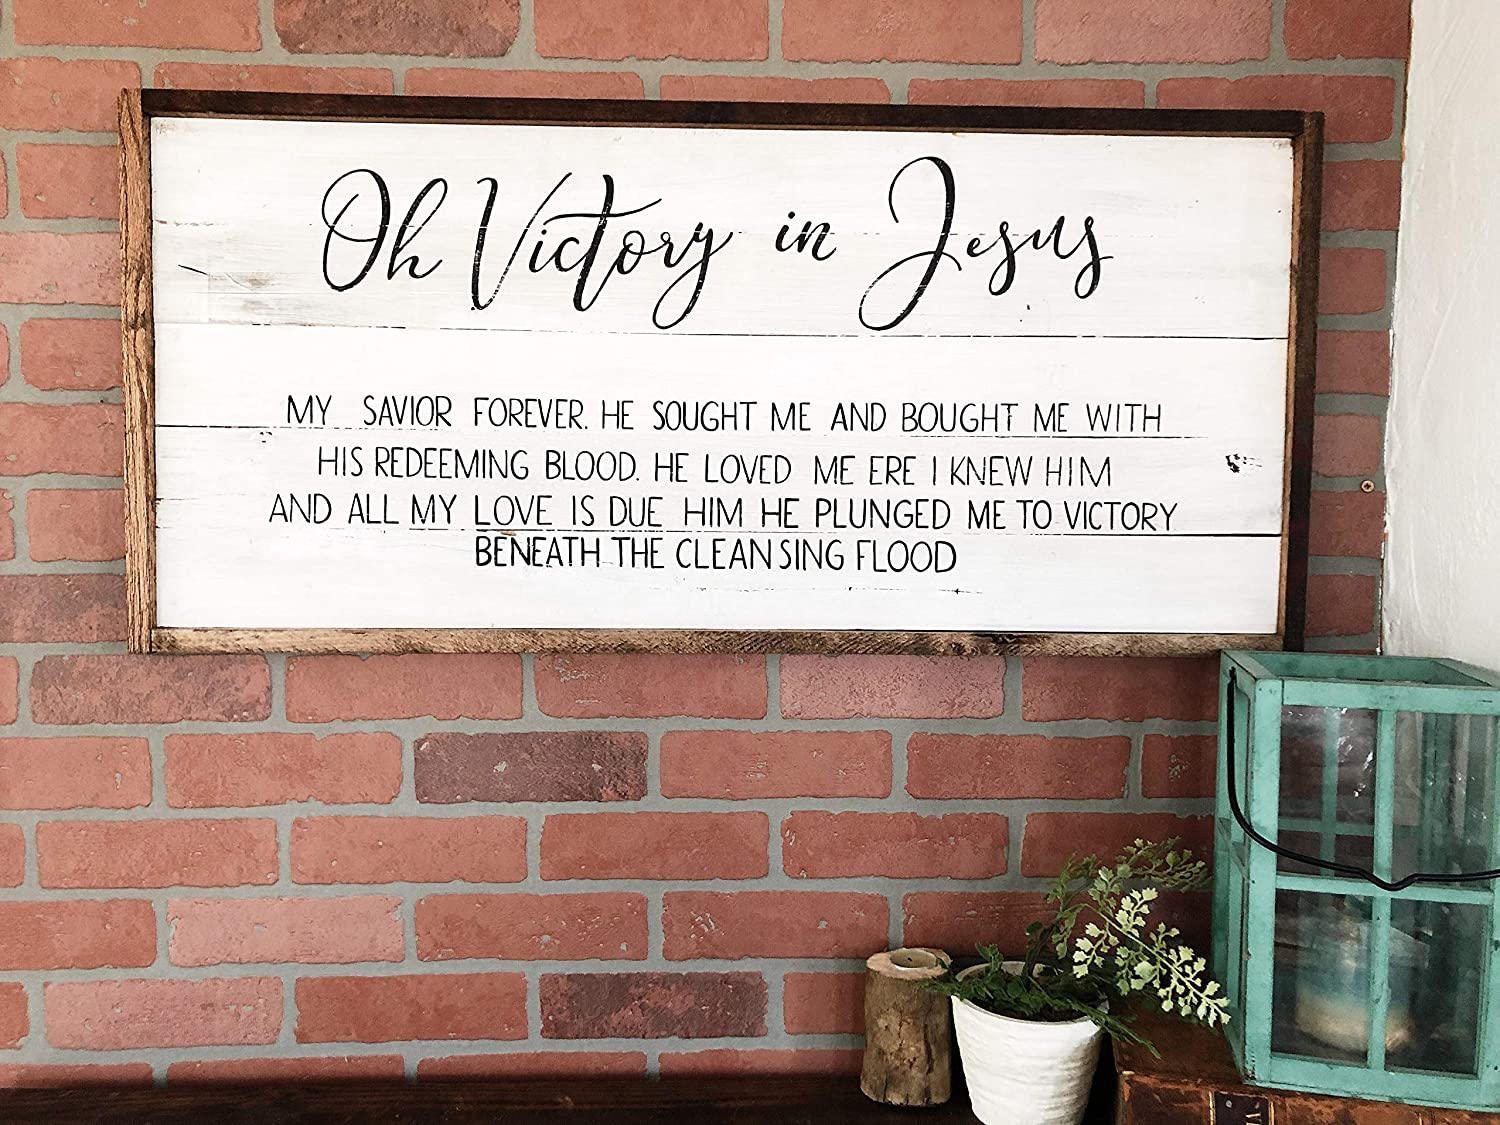 CELYCASY Oh Victory in Jesus hymn Lyrics Wooden Sign Home Decor Wall Art